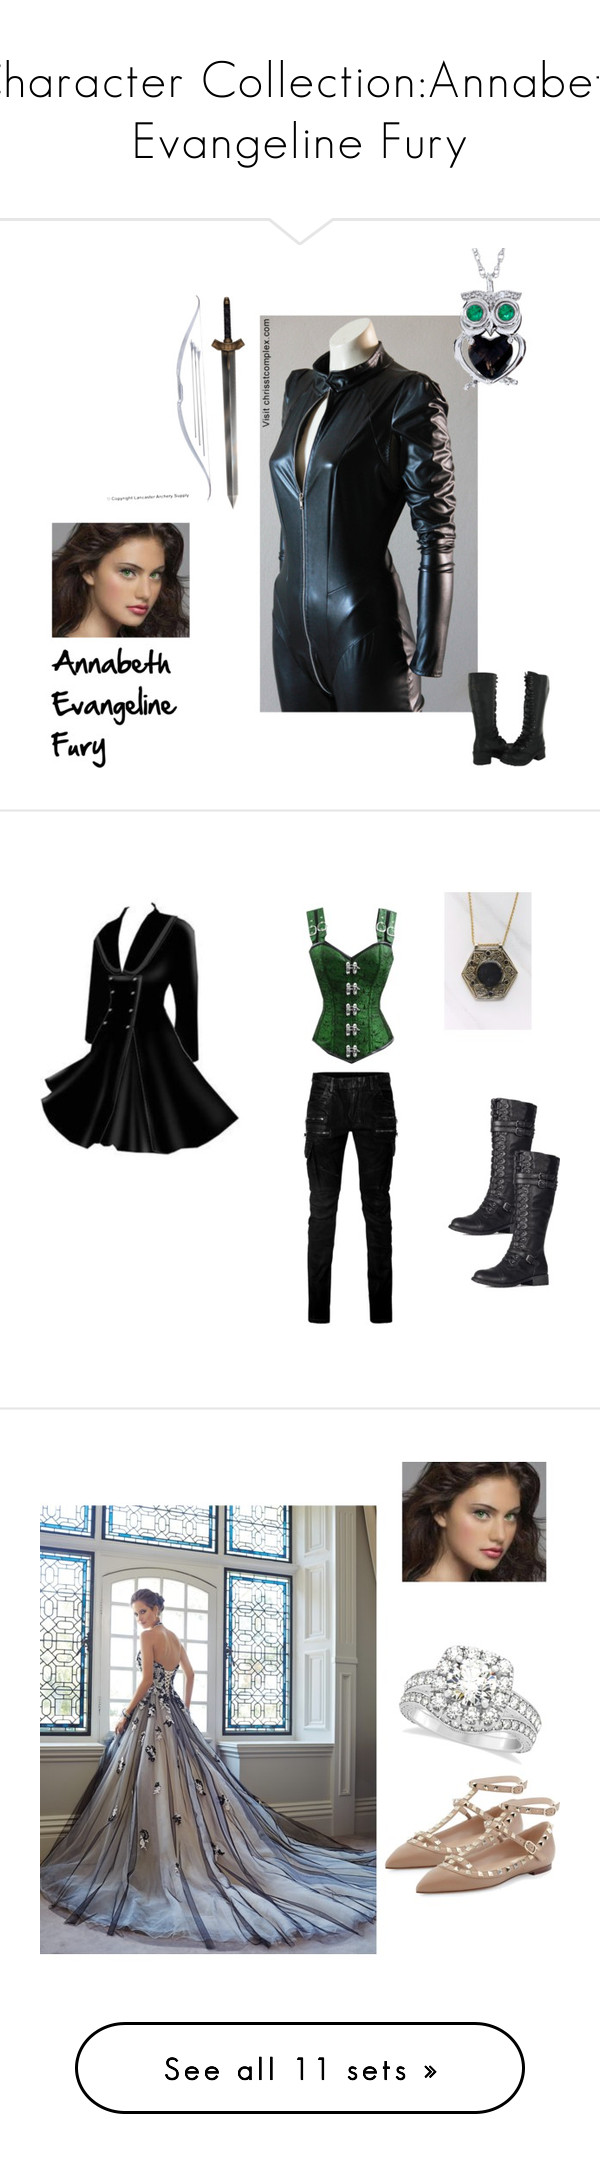 """Character Collection:Annabeth Evangeline Fury"" by crimsoncapo ❤ liked on Polyvore featuring art, Balmain, Vanessa Mooney, Valentino, Allurez, Masquerade, Christian Louboutin, mcmasquerade, Capezio and Dsquared2"